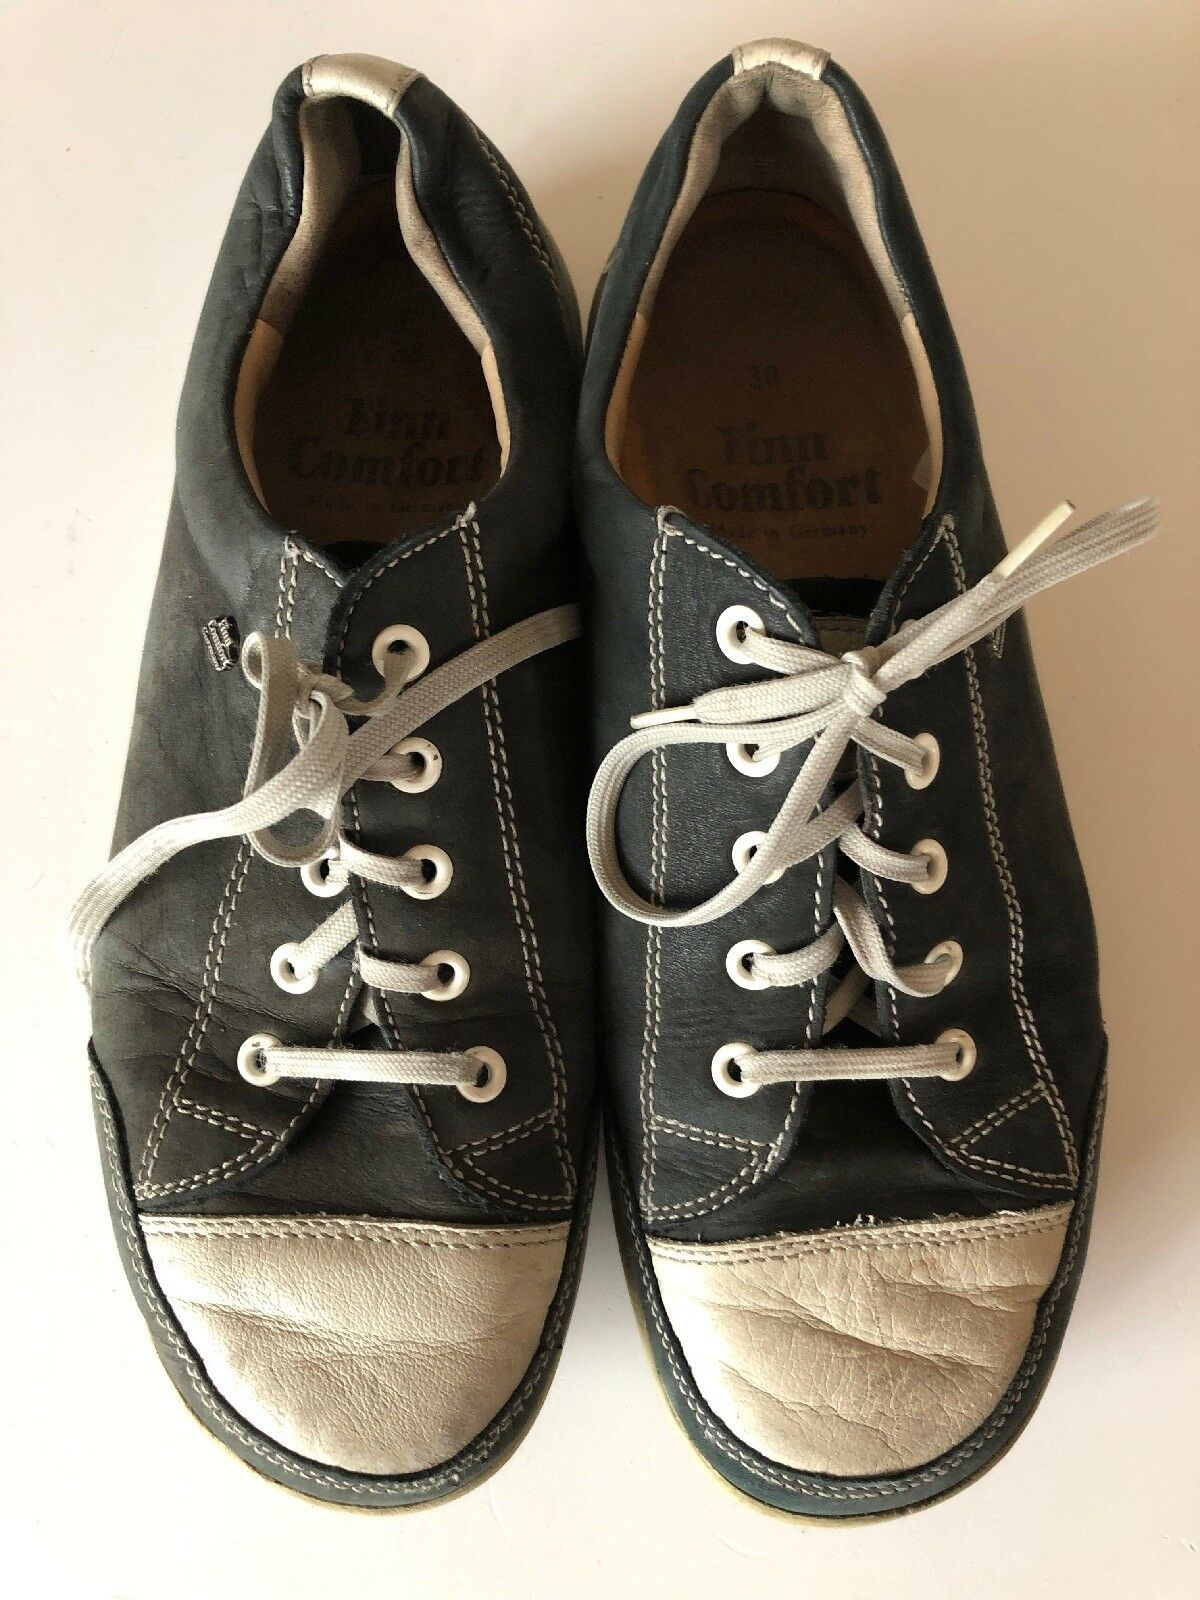 Womens Finn Comfort shoes Sz 7 US Black and White lace up leather Sneaker